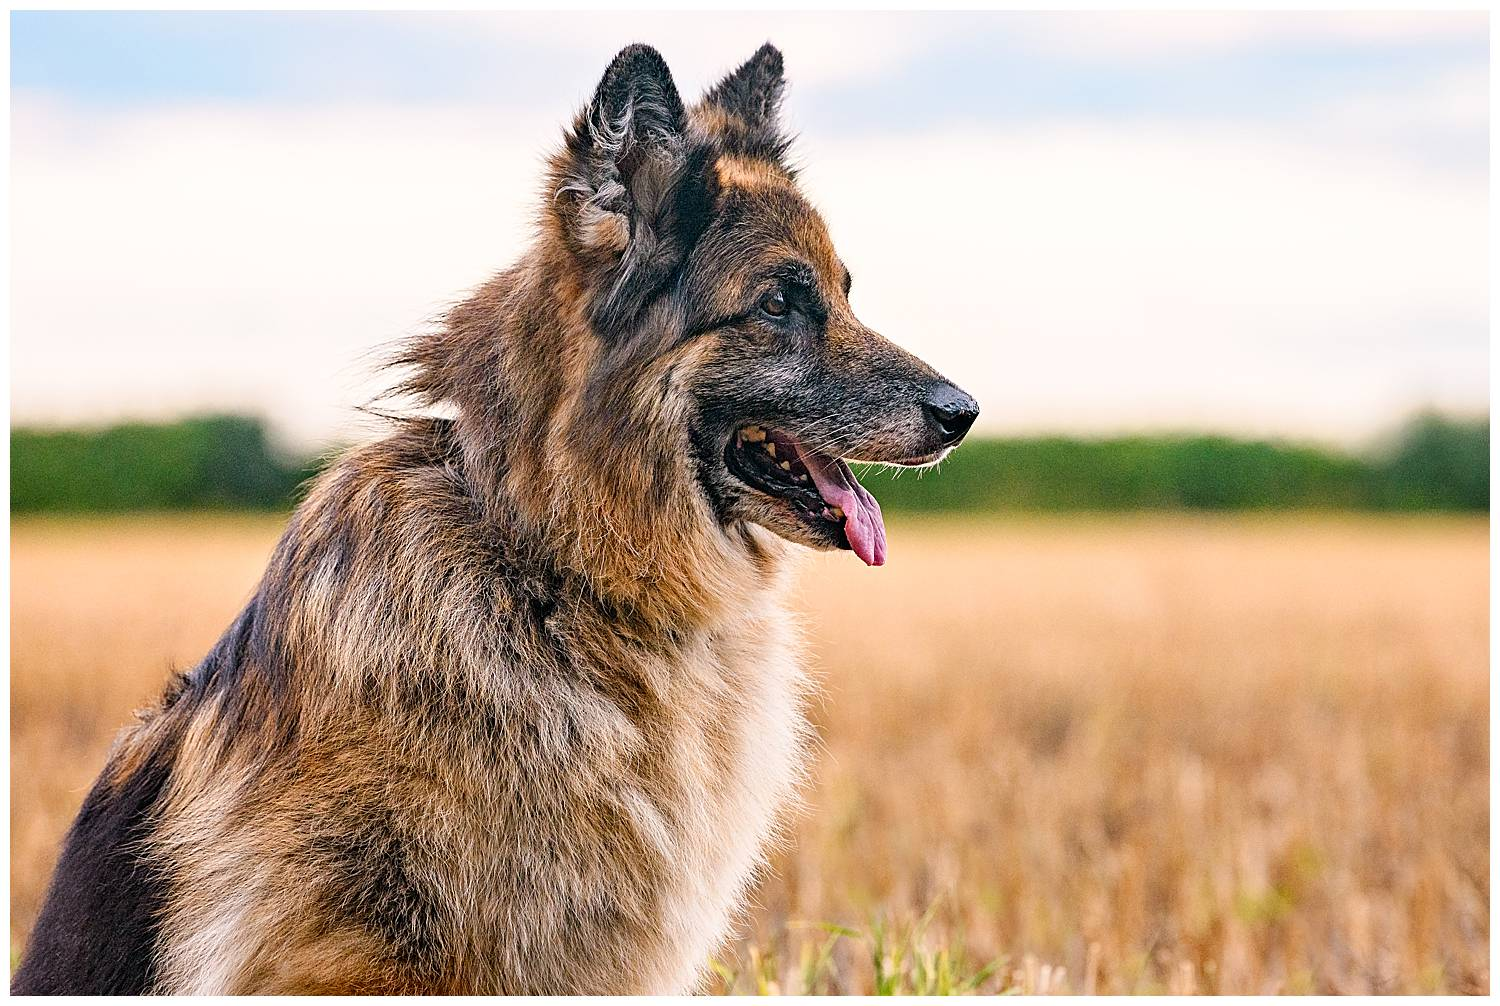 Importance of photographing older dogs. Deaf dogs wont react to squeaker toys, so in this profile photo of the dog the owner was stood off camera to the right waving at the dog!